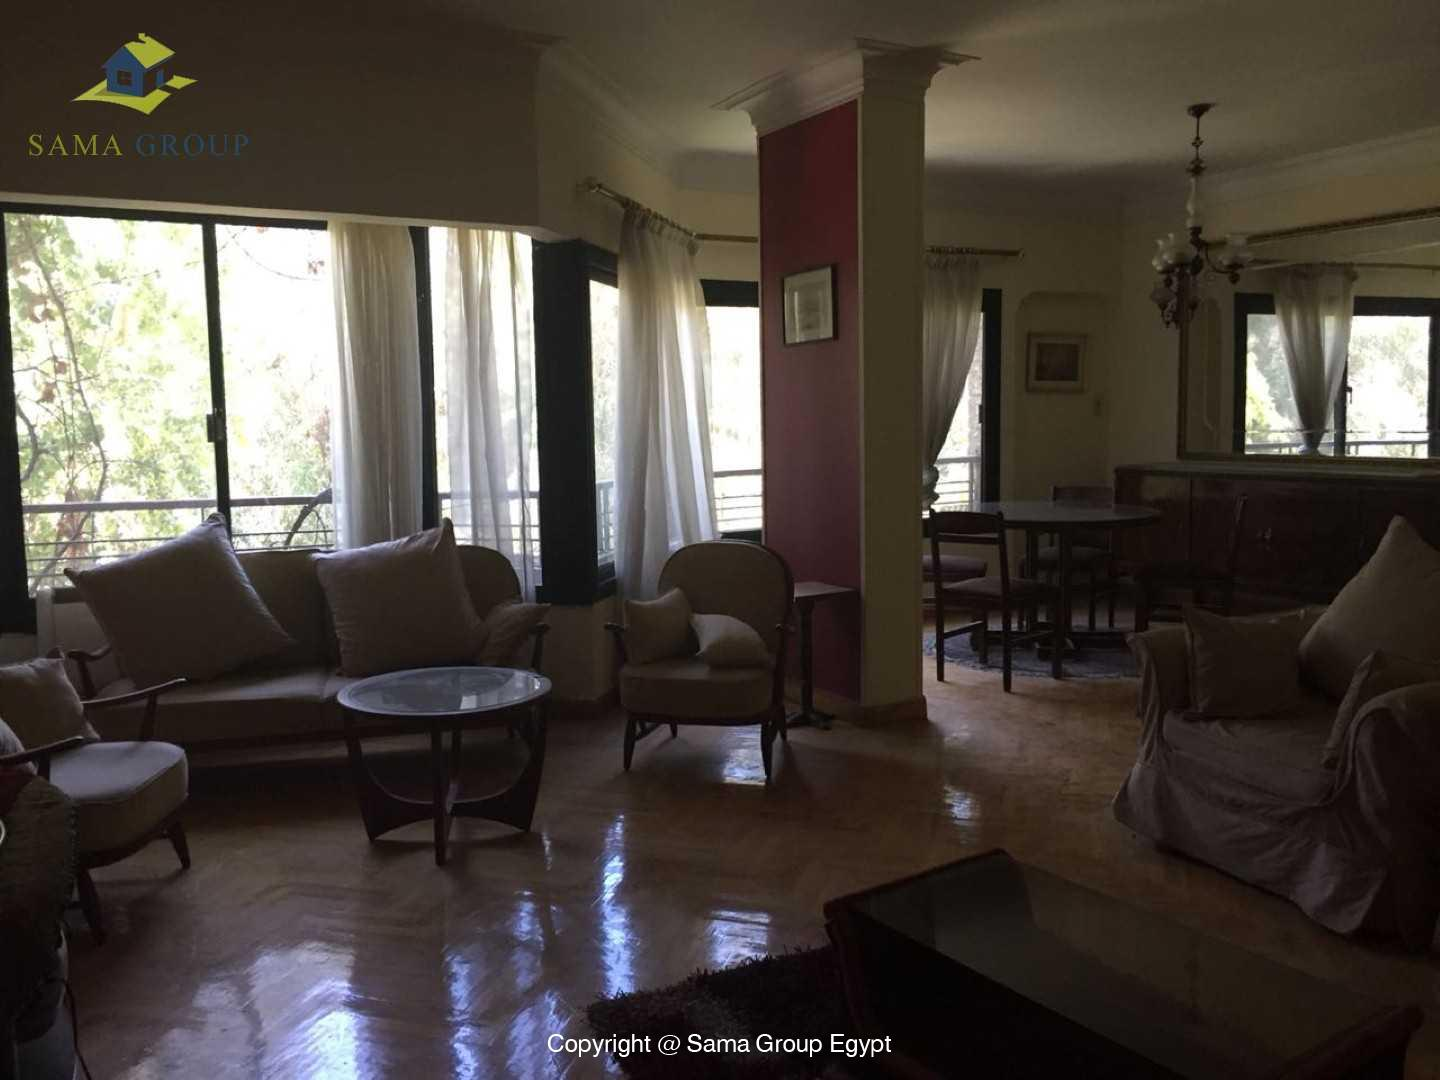 Furnished Apartment For Rent In Maadi Sarayat,Furnished,Apartment NO #8